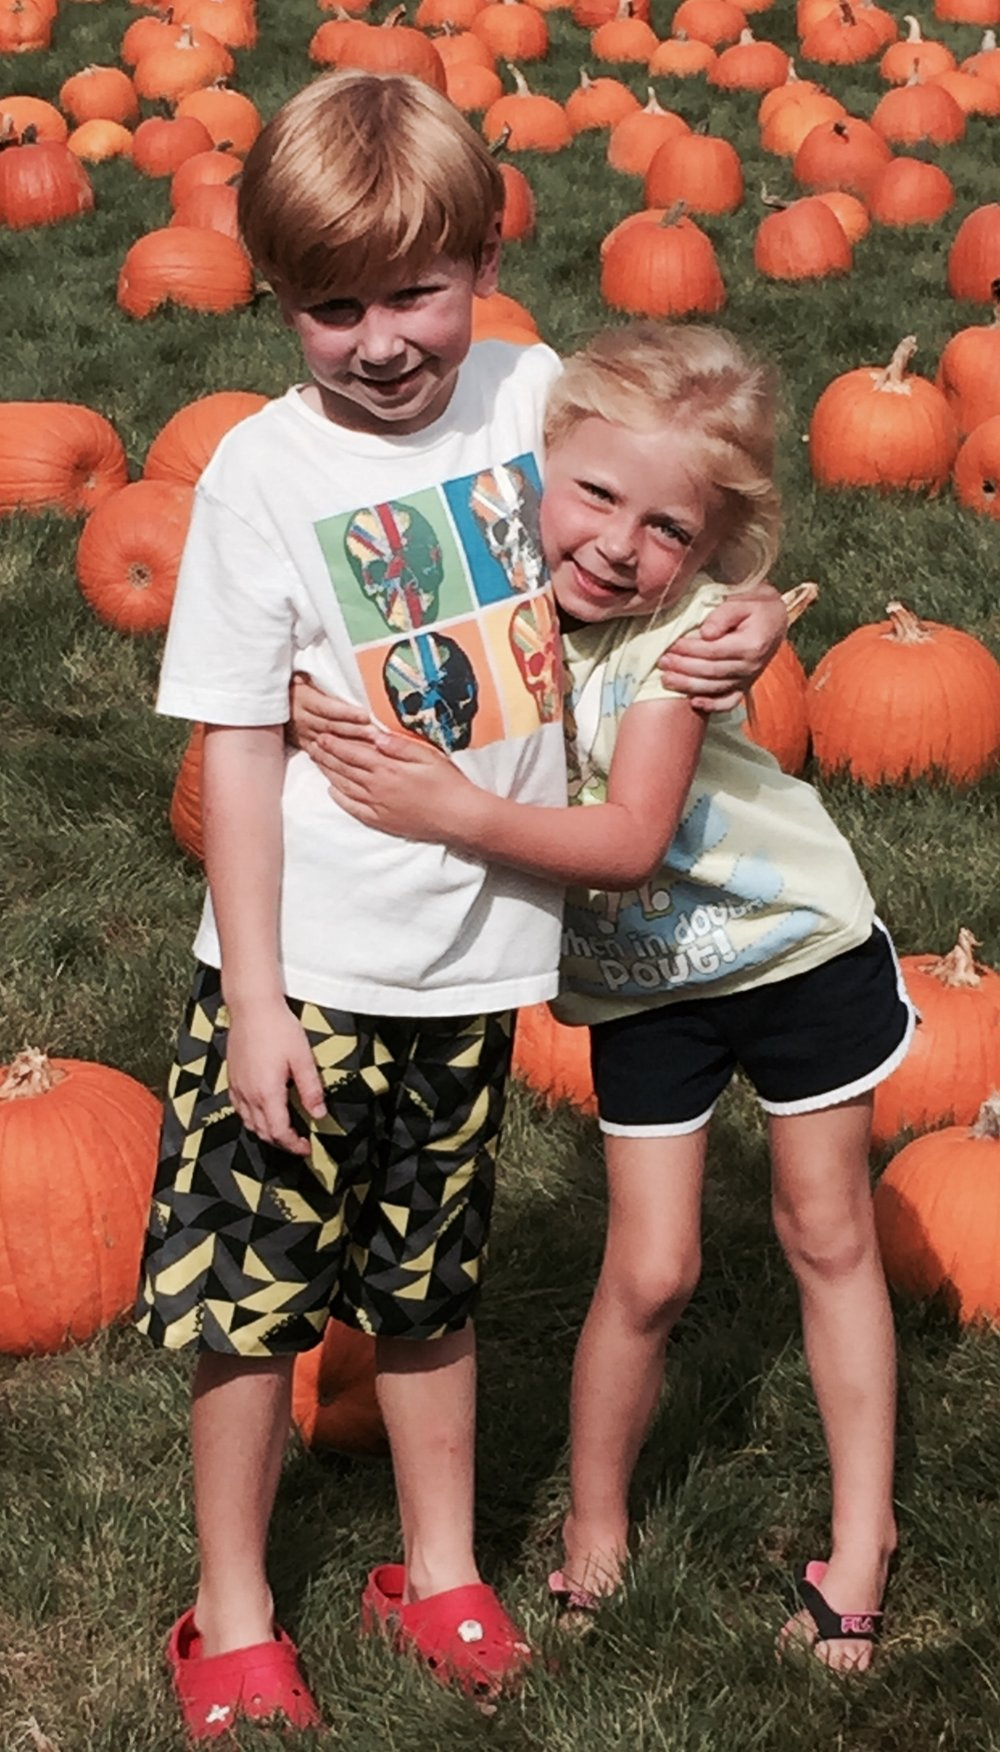 Photo provided by Jean Schmitt Many families are gearing up for this seasons fall festivities, where several farms across the Town of Huntington will be offering pumpkin picking, rides, Halloween decorations, goodies and more.